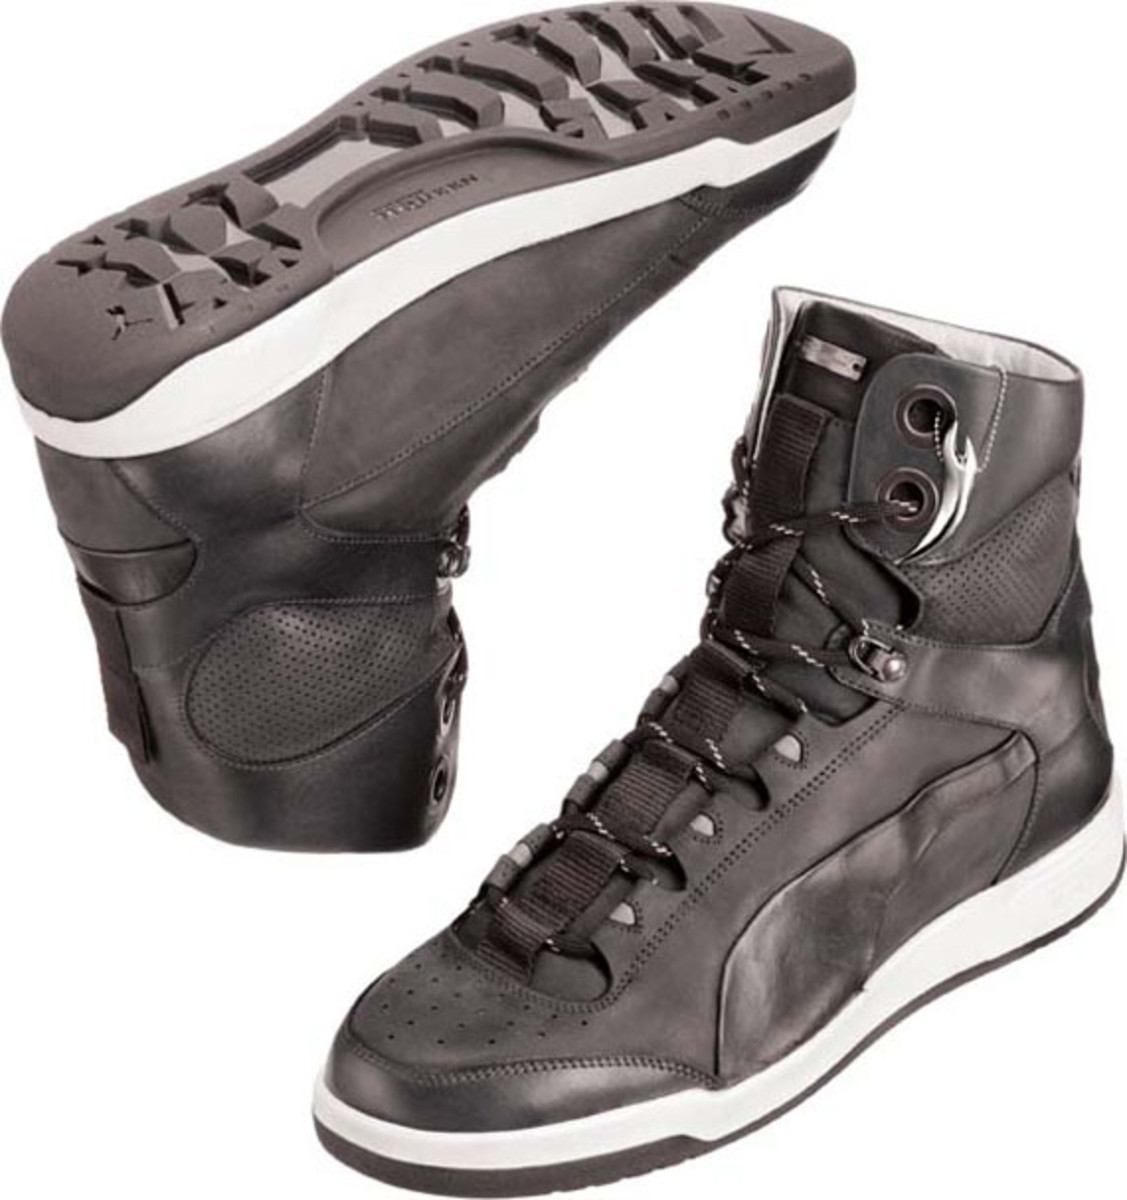 71a08bc5bc070a Alexander McQueen x PUMA - Fall/Winter 2010 - Sneakers Collection ...